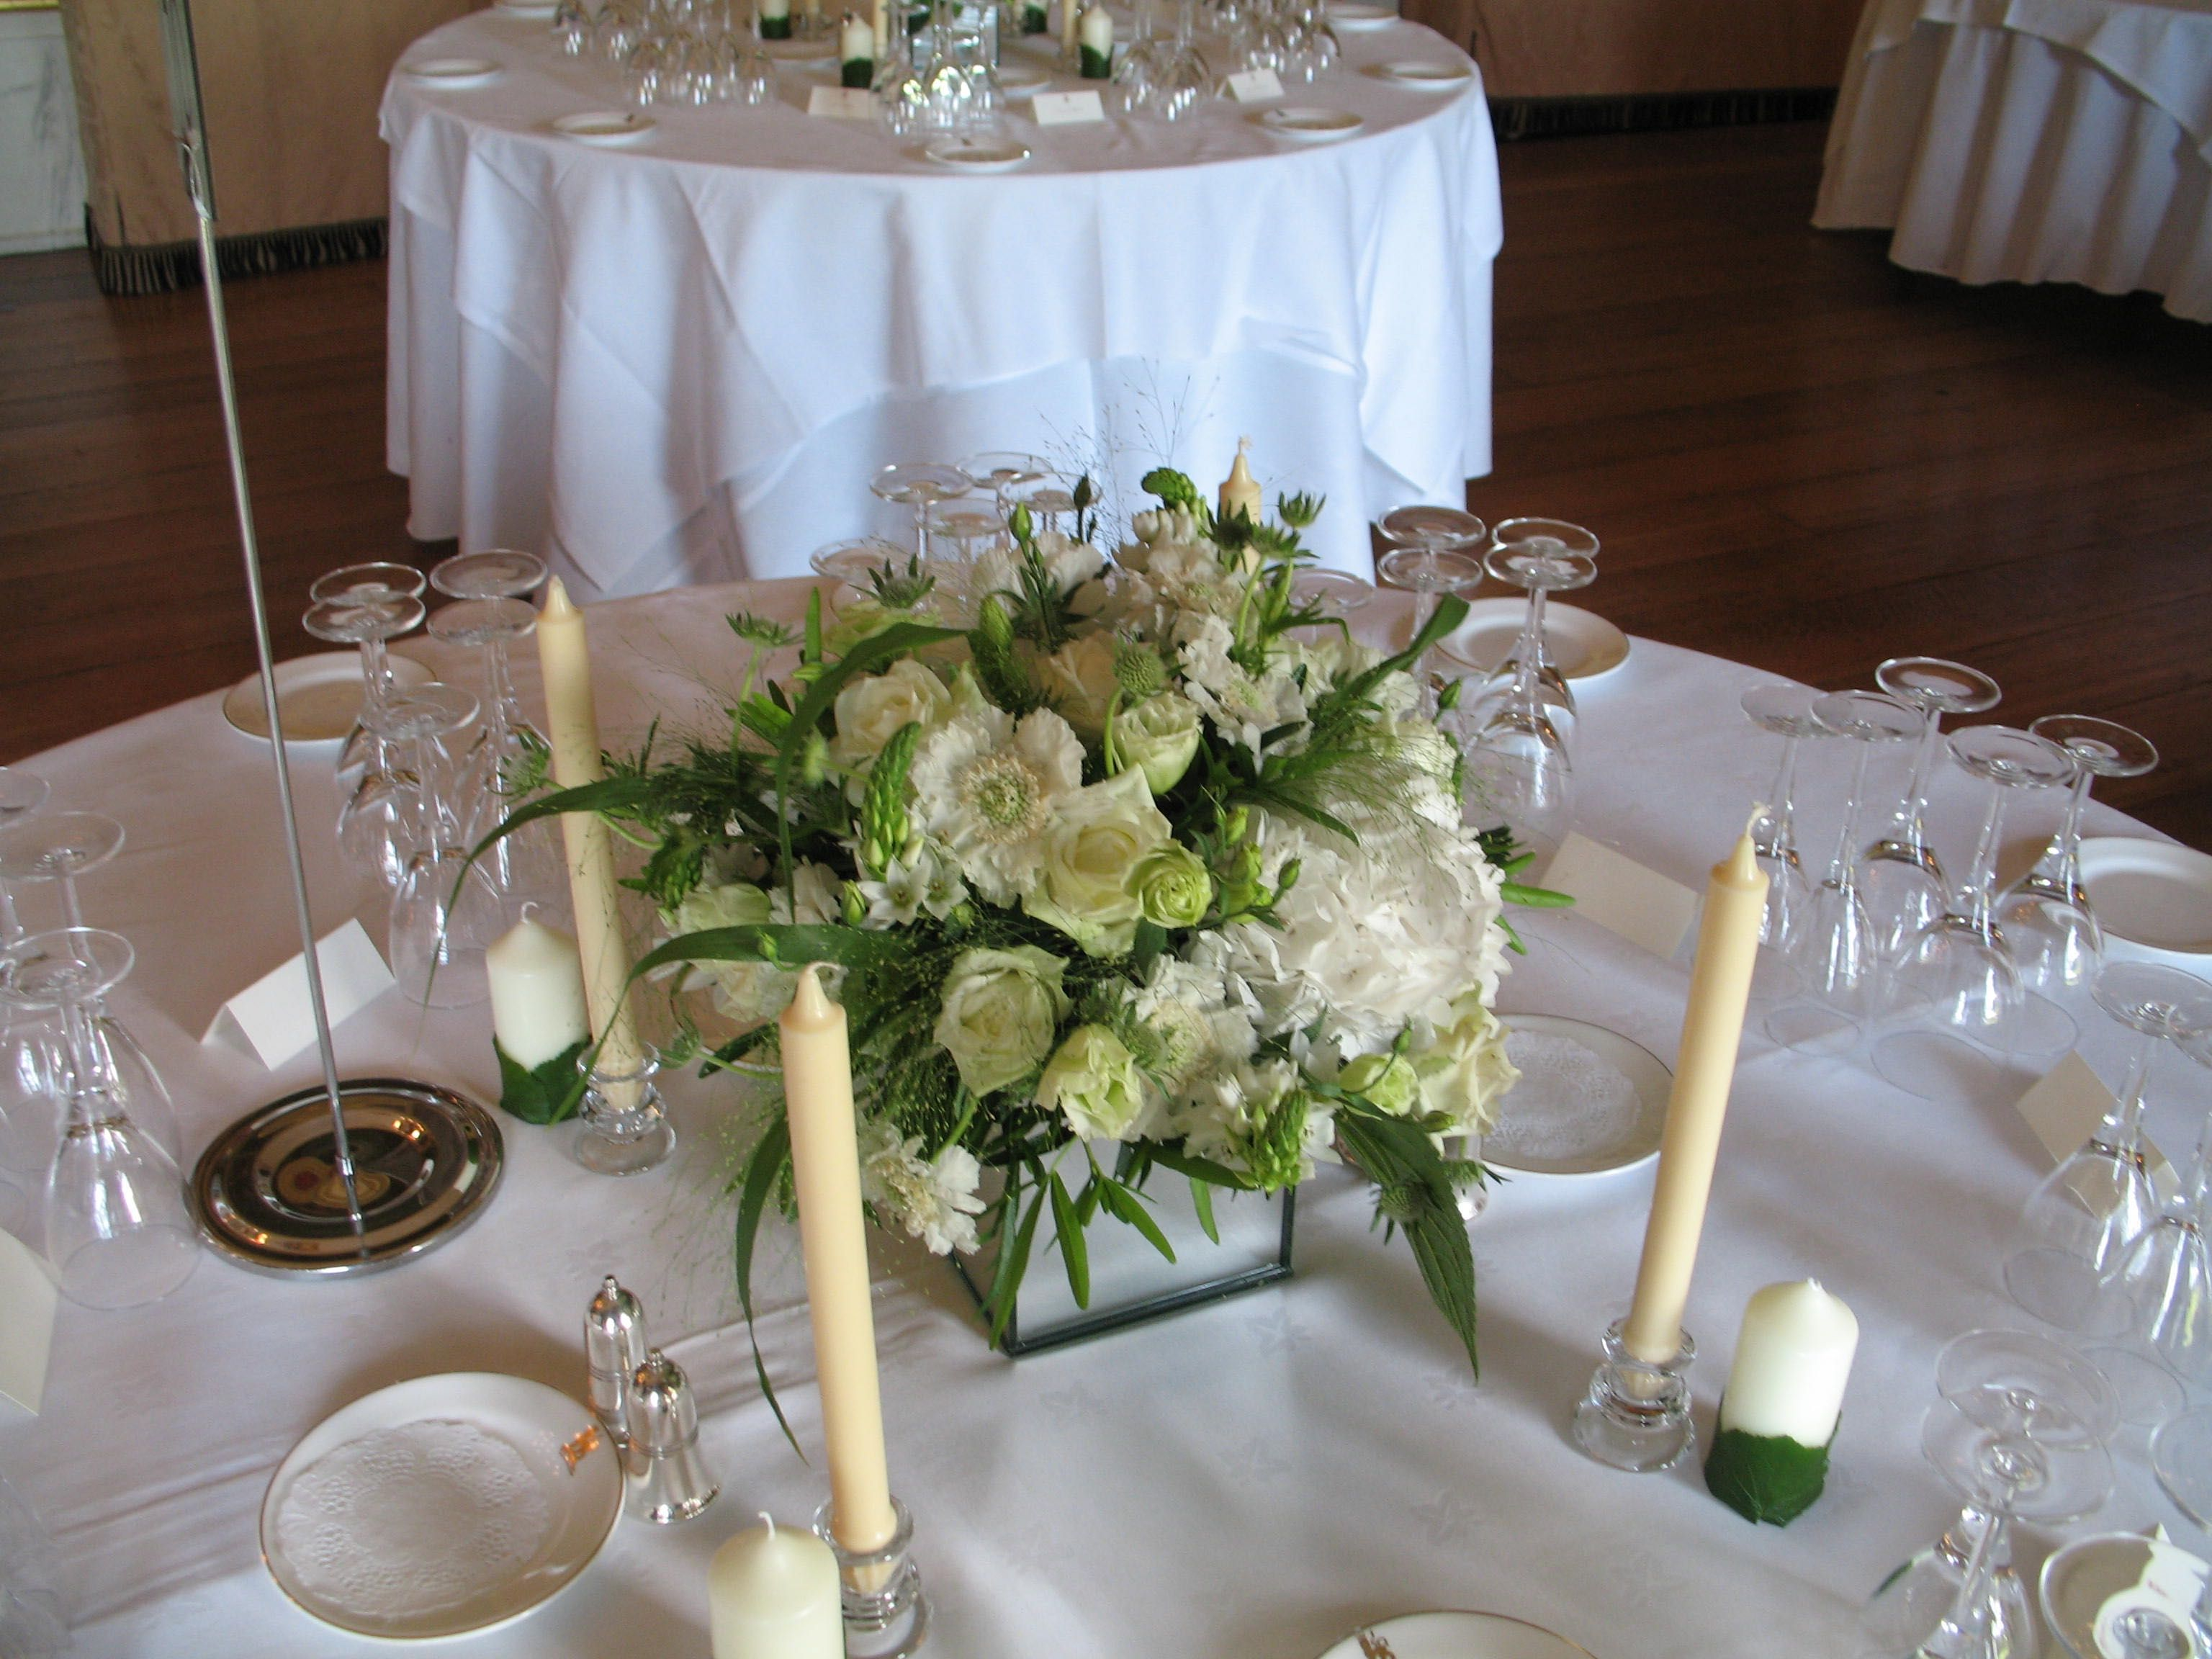 Bon Table Centre At Goodwood House Decorated With Mirror Cube Filled With  Seasonal White And Green Flowers